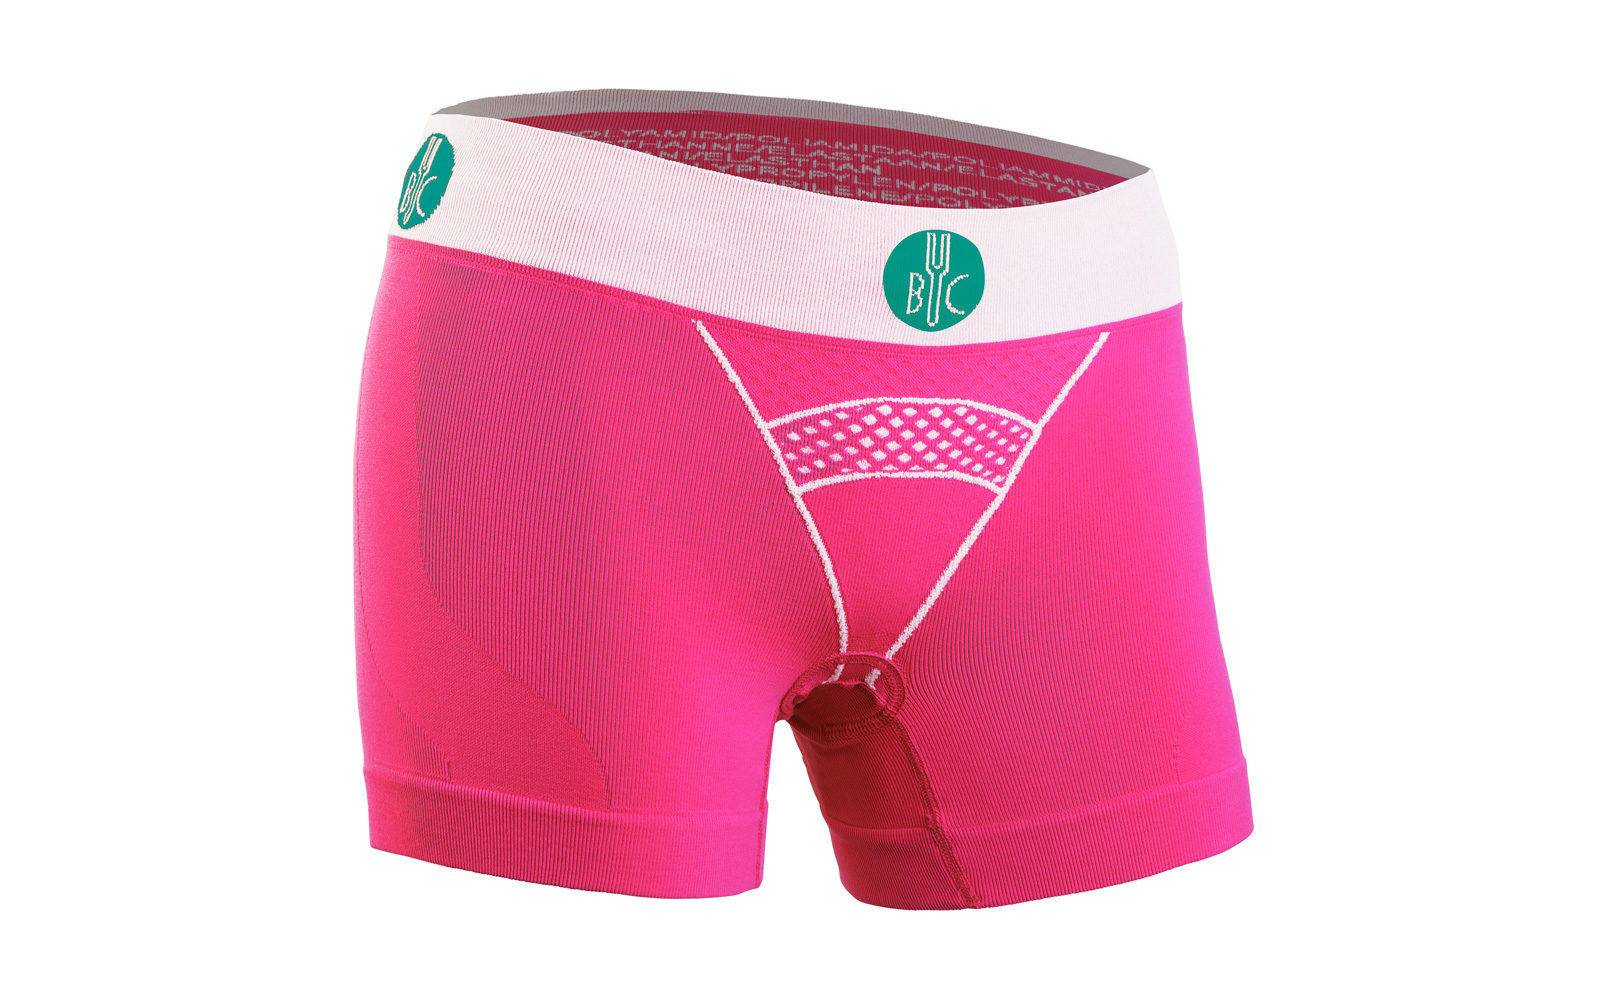 For.Bicy boxer lady, in tessuto seamless, con fondello amovibile in gel da 4mm, trattamento antibatterico e sistema di bloccaggio antispostamento, euro 59